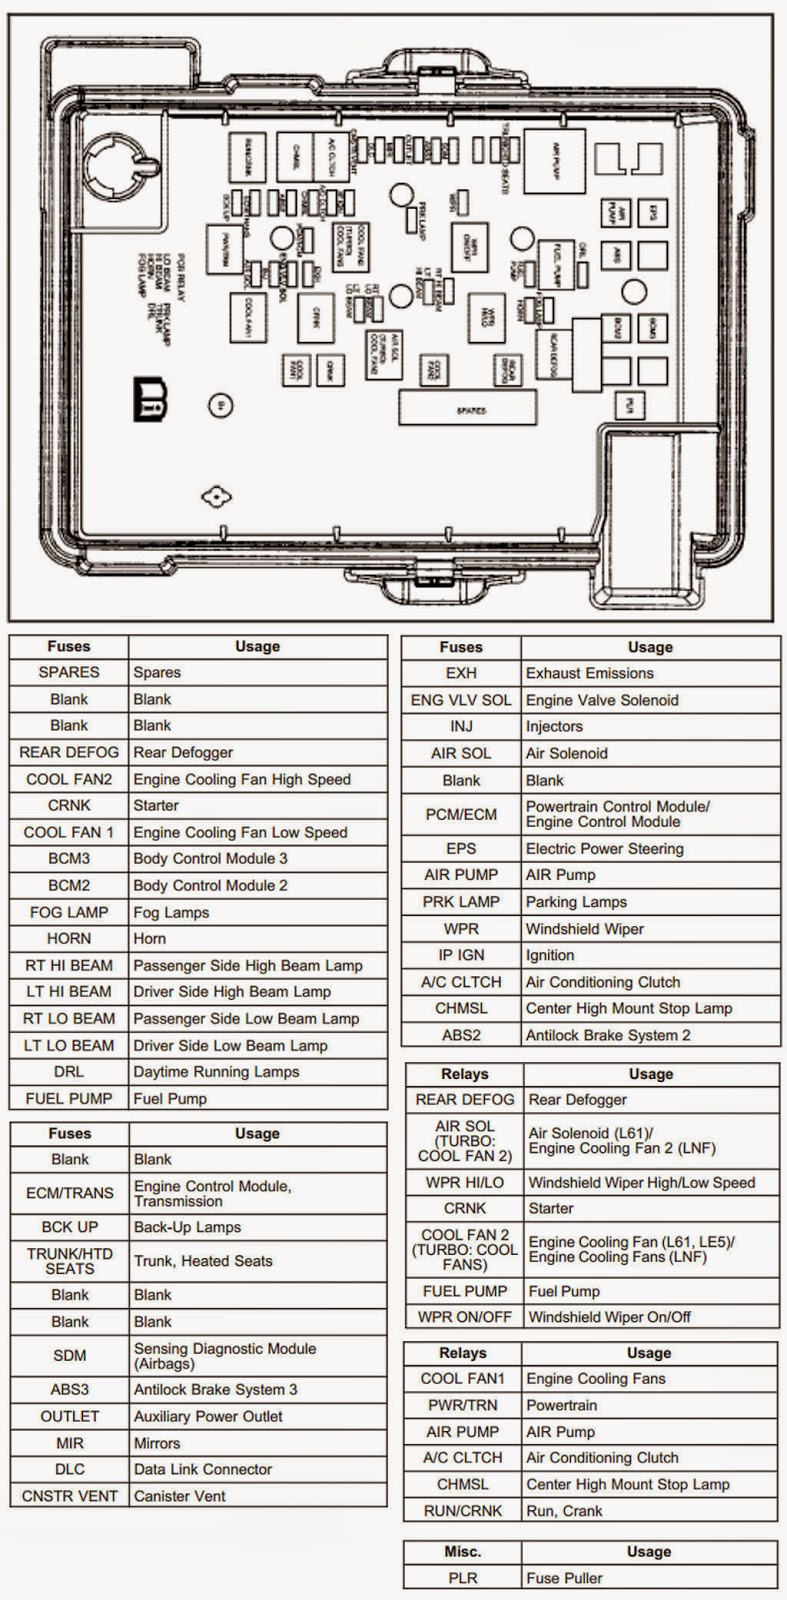 2006 cobalt fuse box list of schematic circuit diagram u2022 2006 honda ridgeline fuse box [ 787 x 1600 Pixel ]